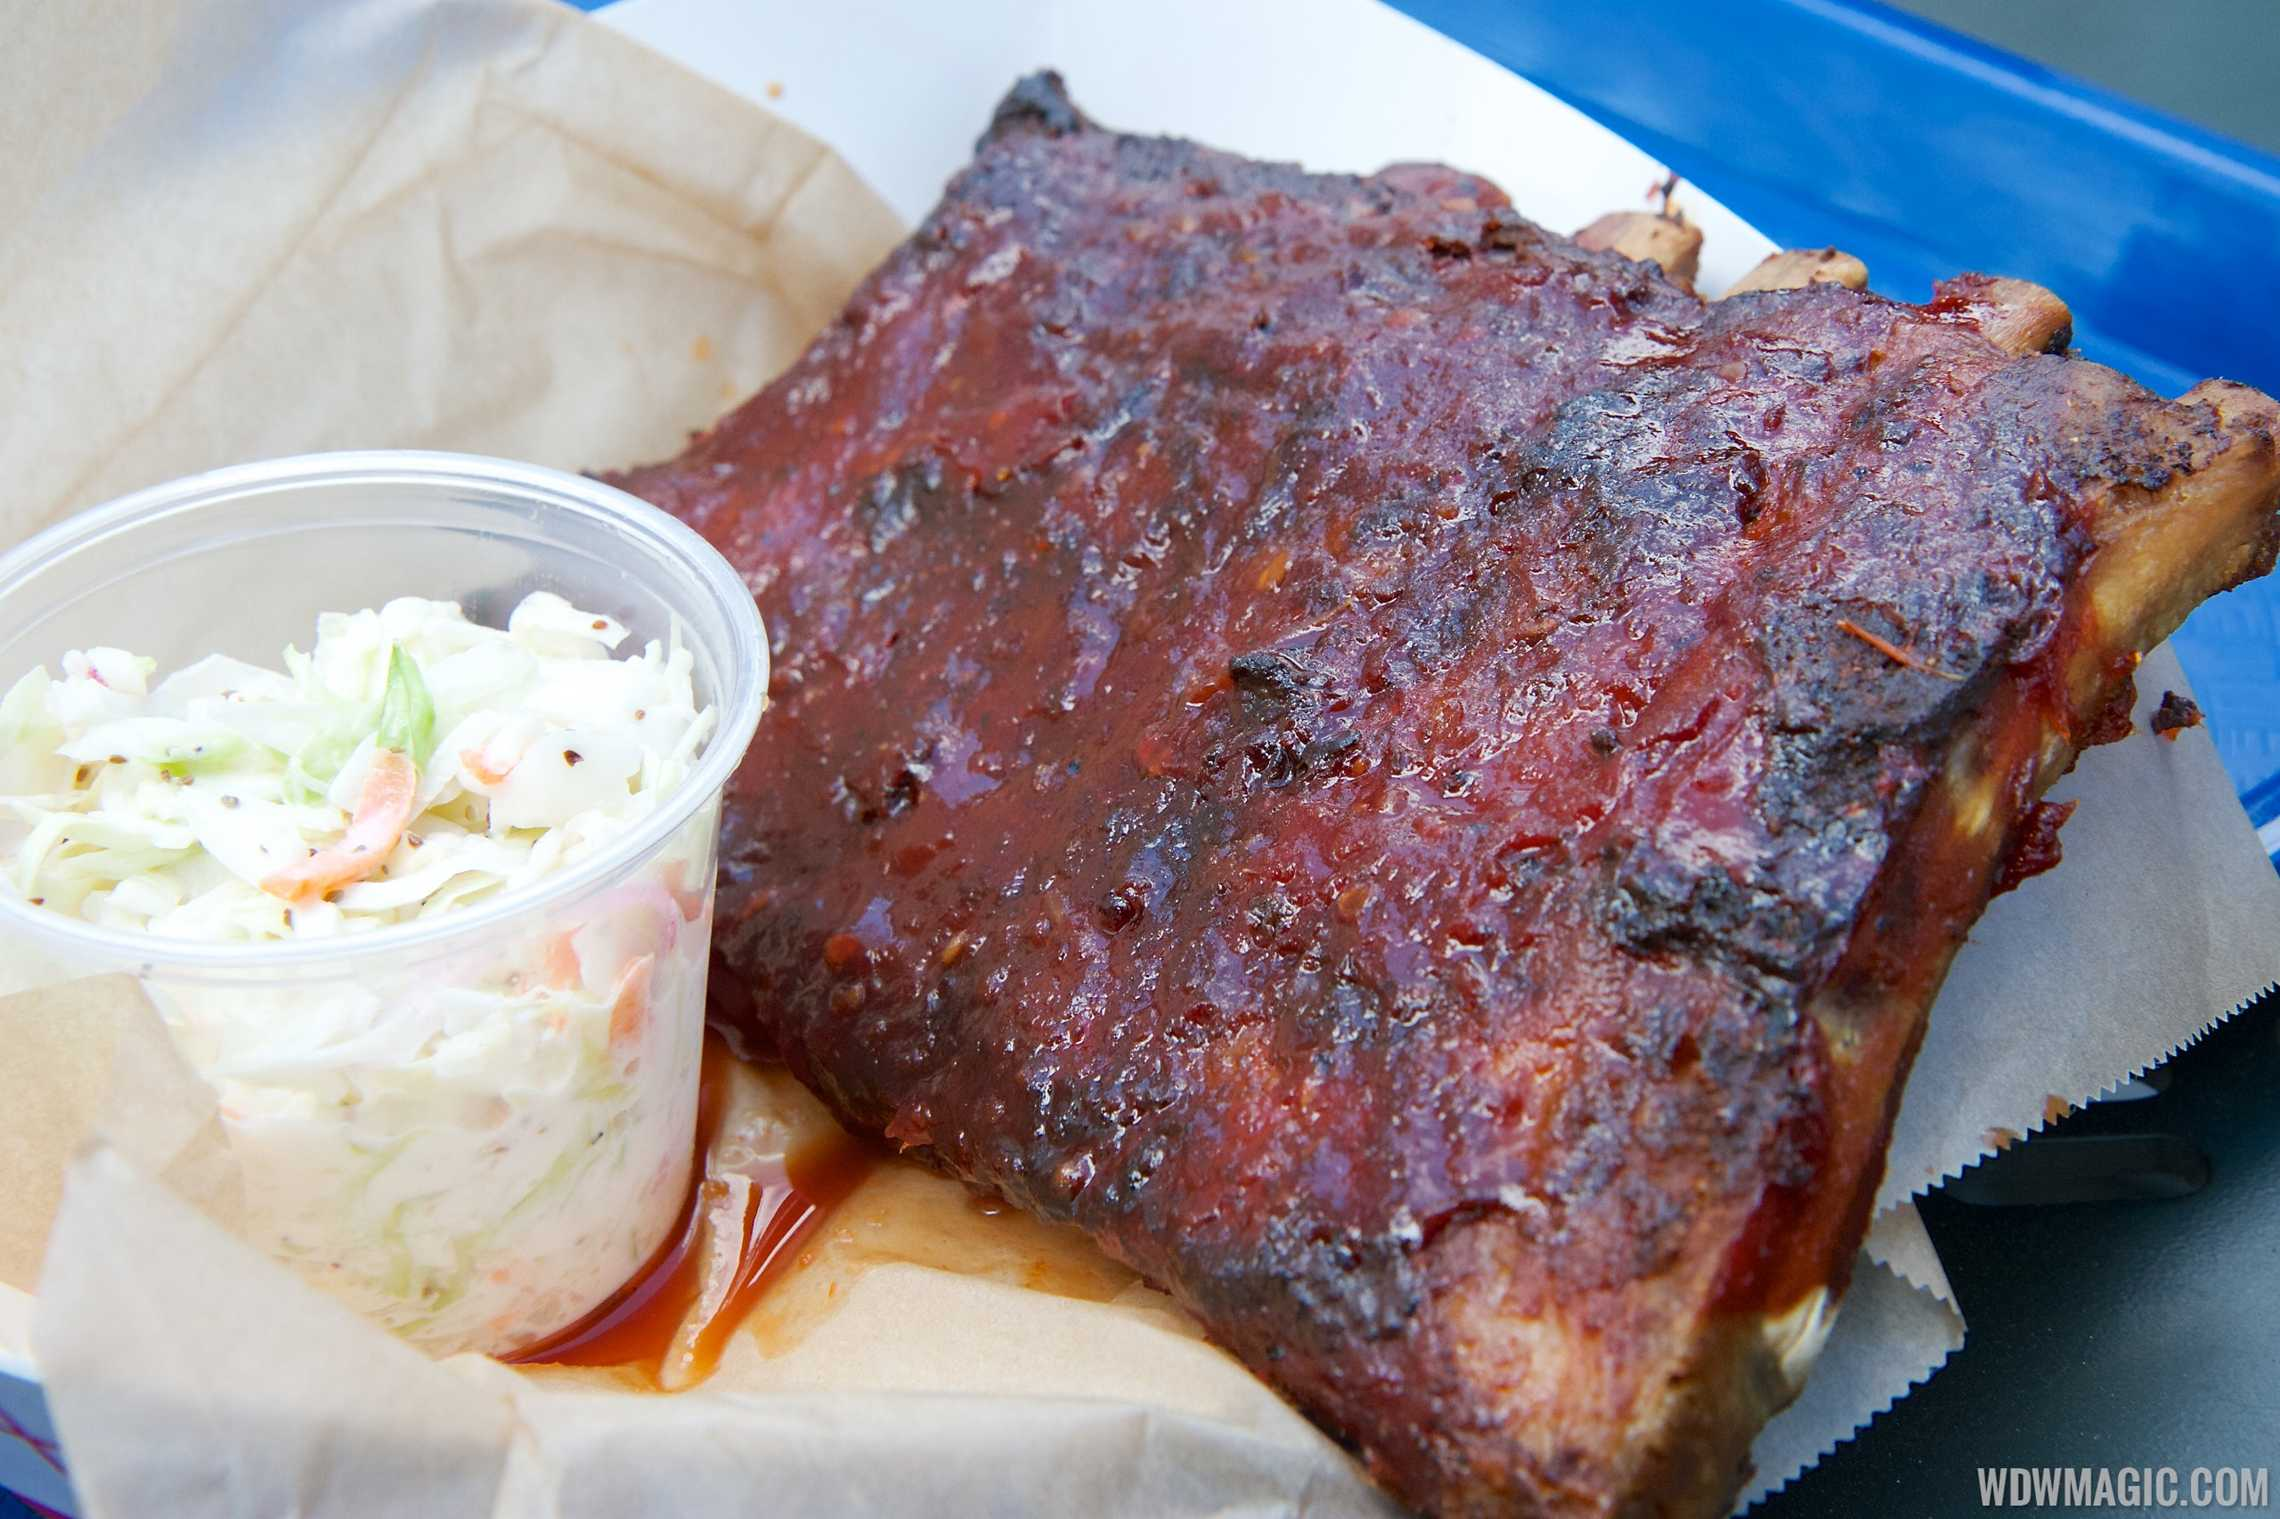 The Smokehouse - Half rack of ribs